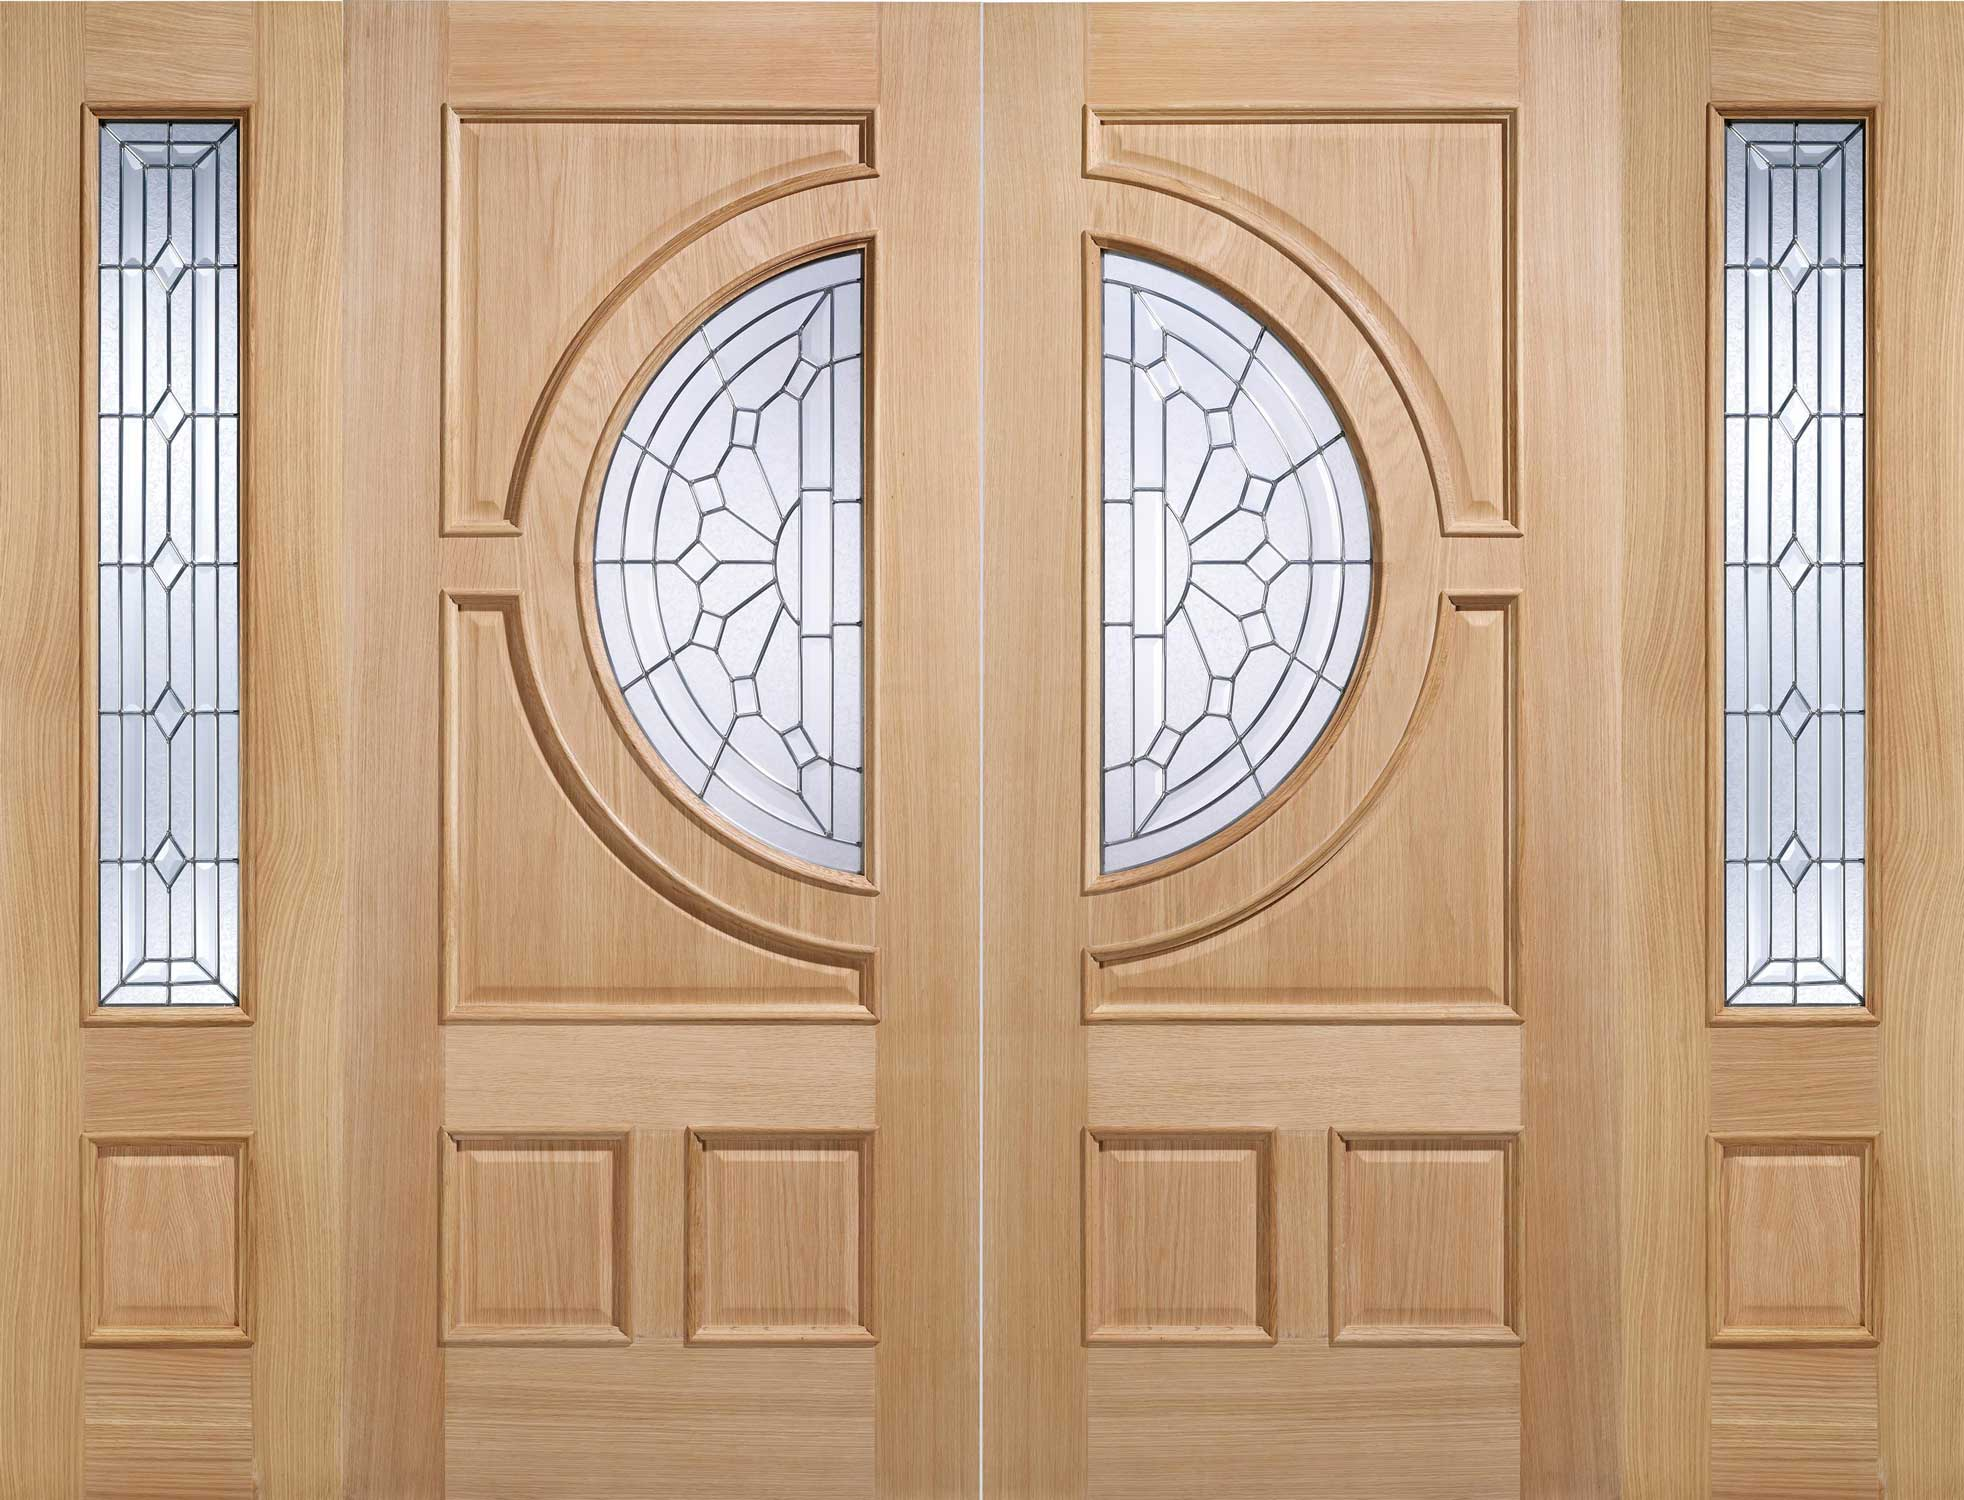 Traditional Exterior Oak Doors | Exterior Glazed Oak Doors | Oak ...